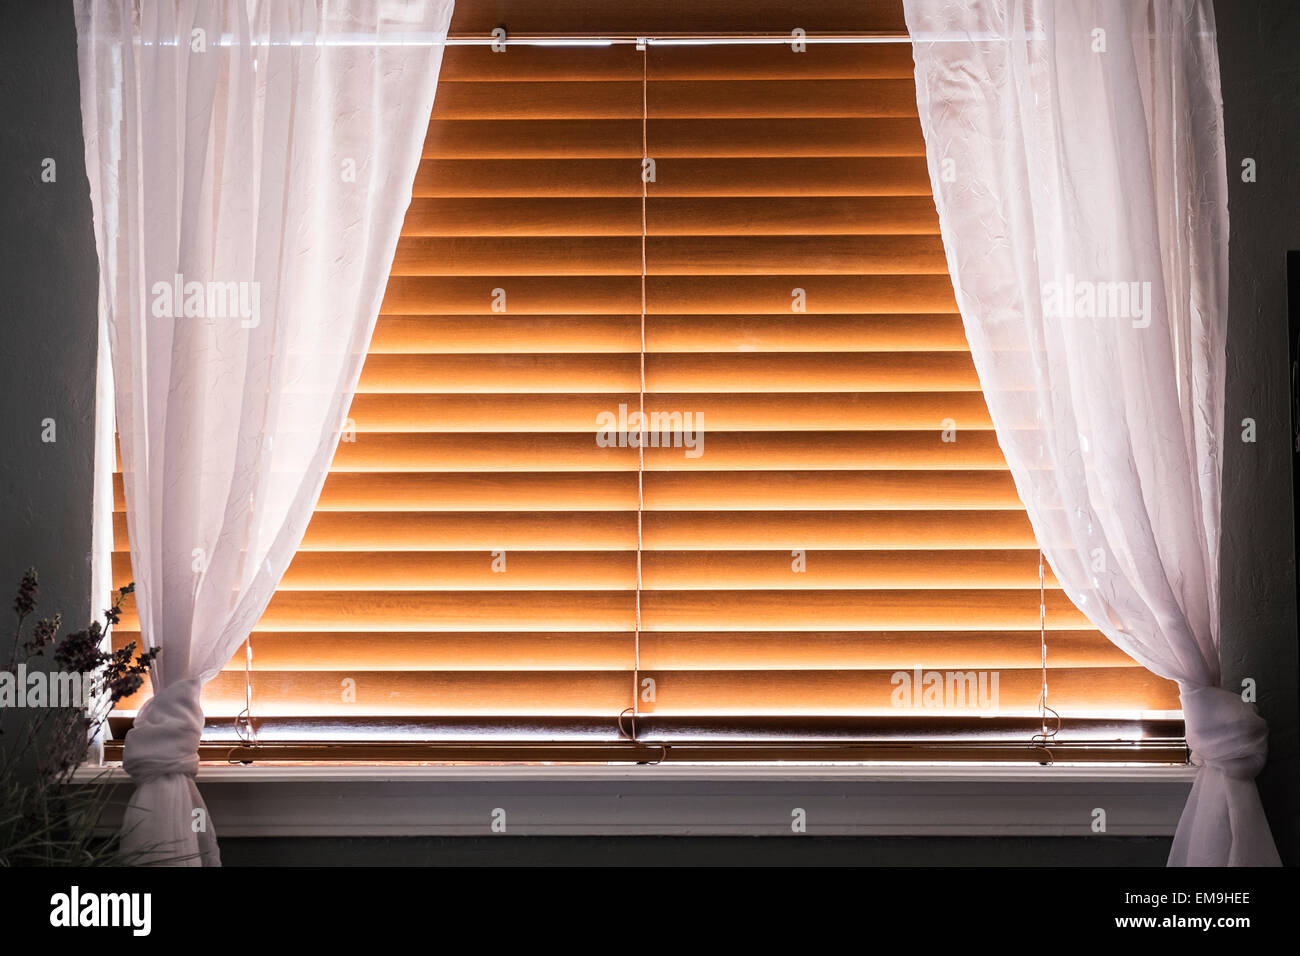 A Window Covered With Closed Wooden Window Blinds With White Filmy Stock Photo Alamy